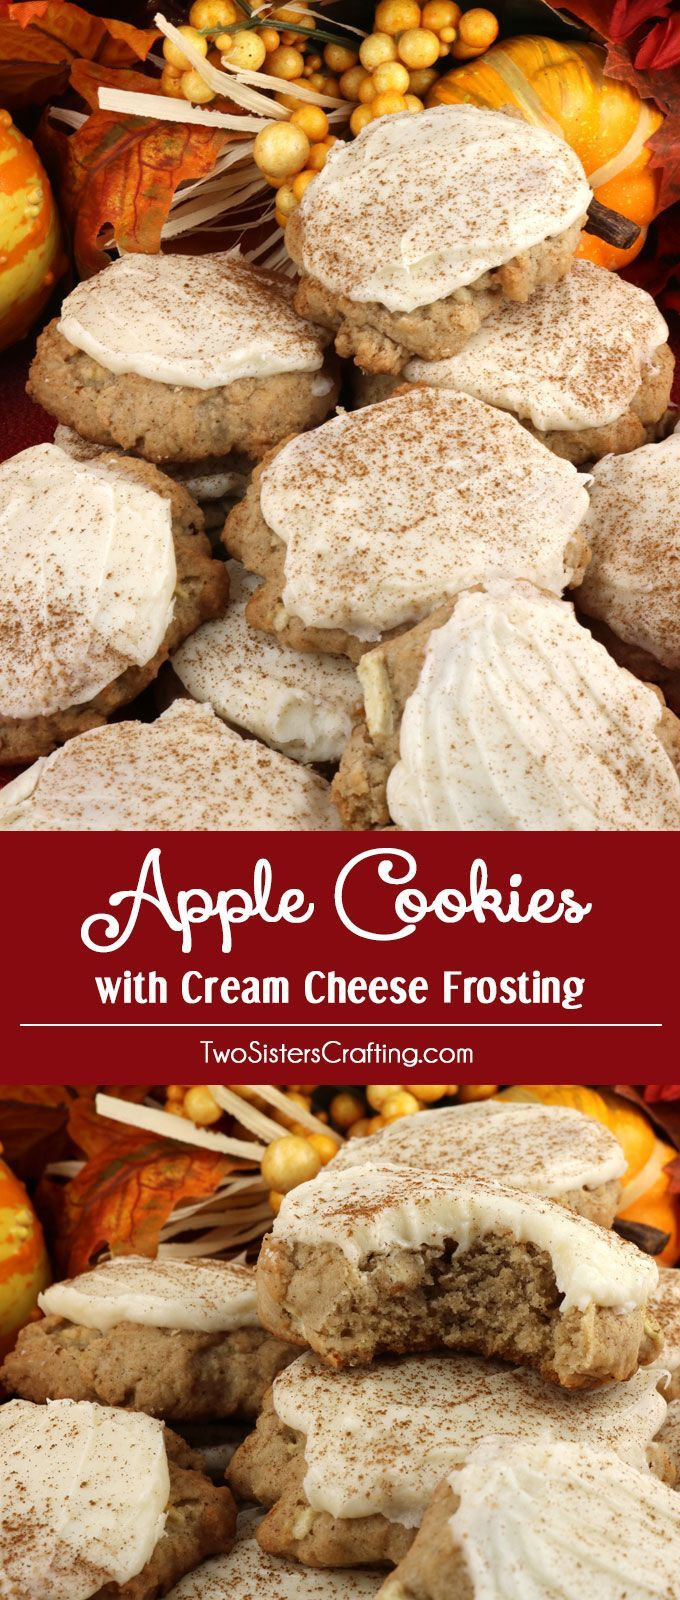 Apple Cookies and Cream Cheese Frosting Our Harvest Marble Chocolate Chip Cookies are a classic cookie dressed up for Fall and Thanksgiving. #simpleicingrecipe